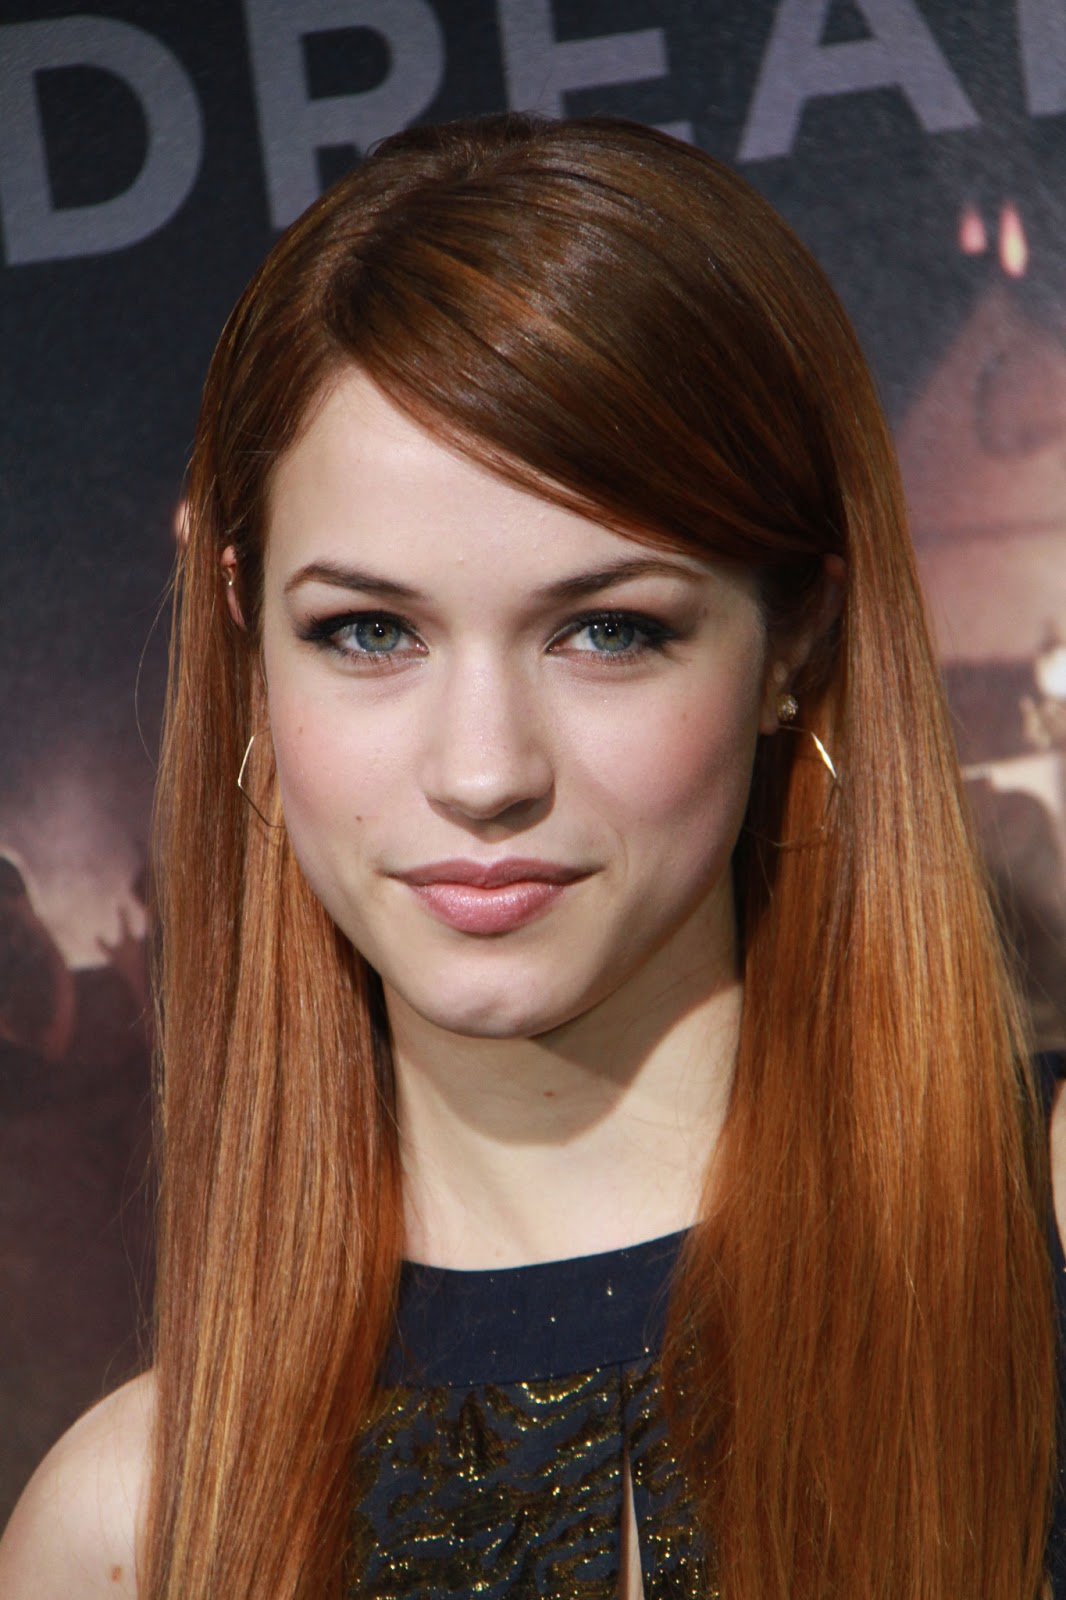 Alexis knapp form project x 3 of 4 7